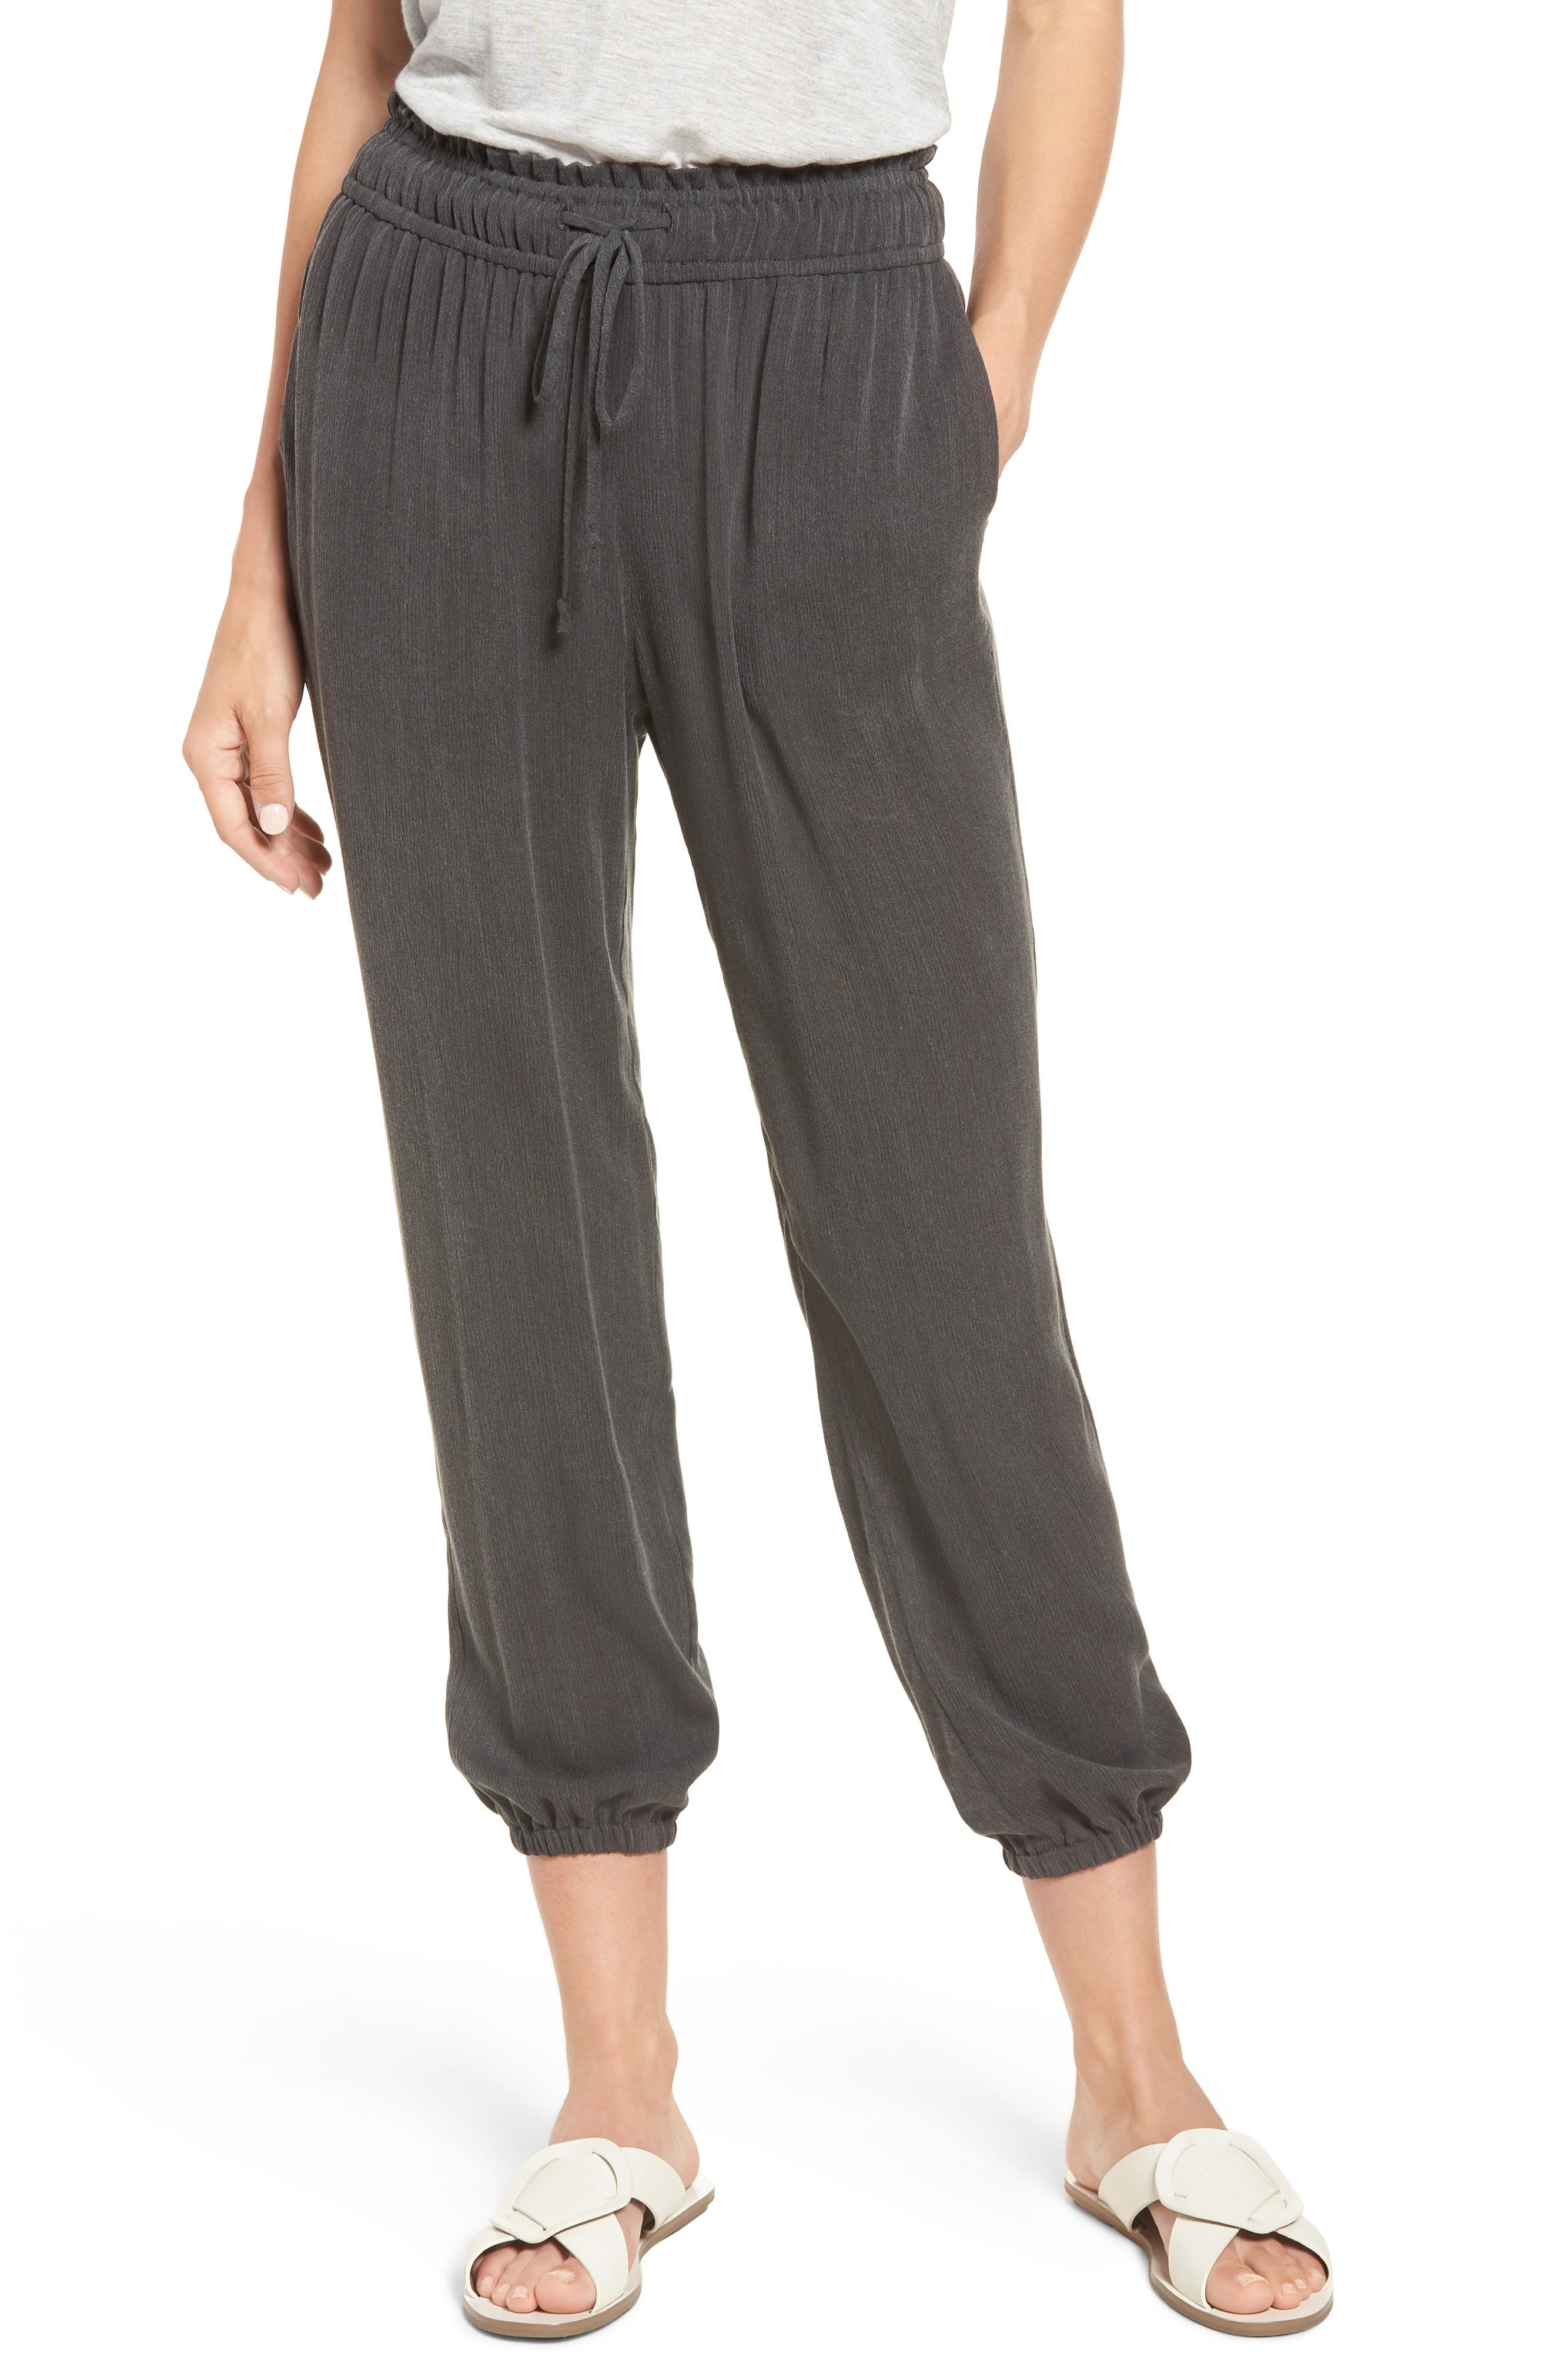 x Hi Sugarplum! Hanalei Soft Jogger Pants,                         Main,                         color, 001